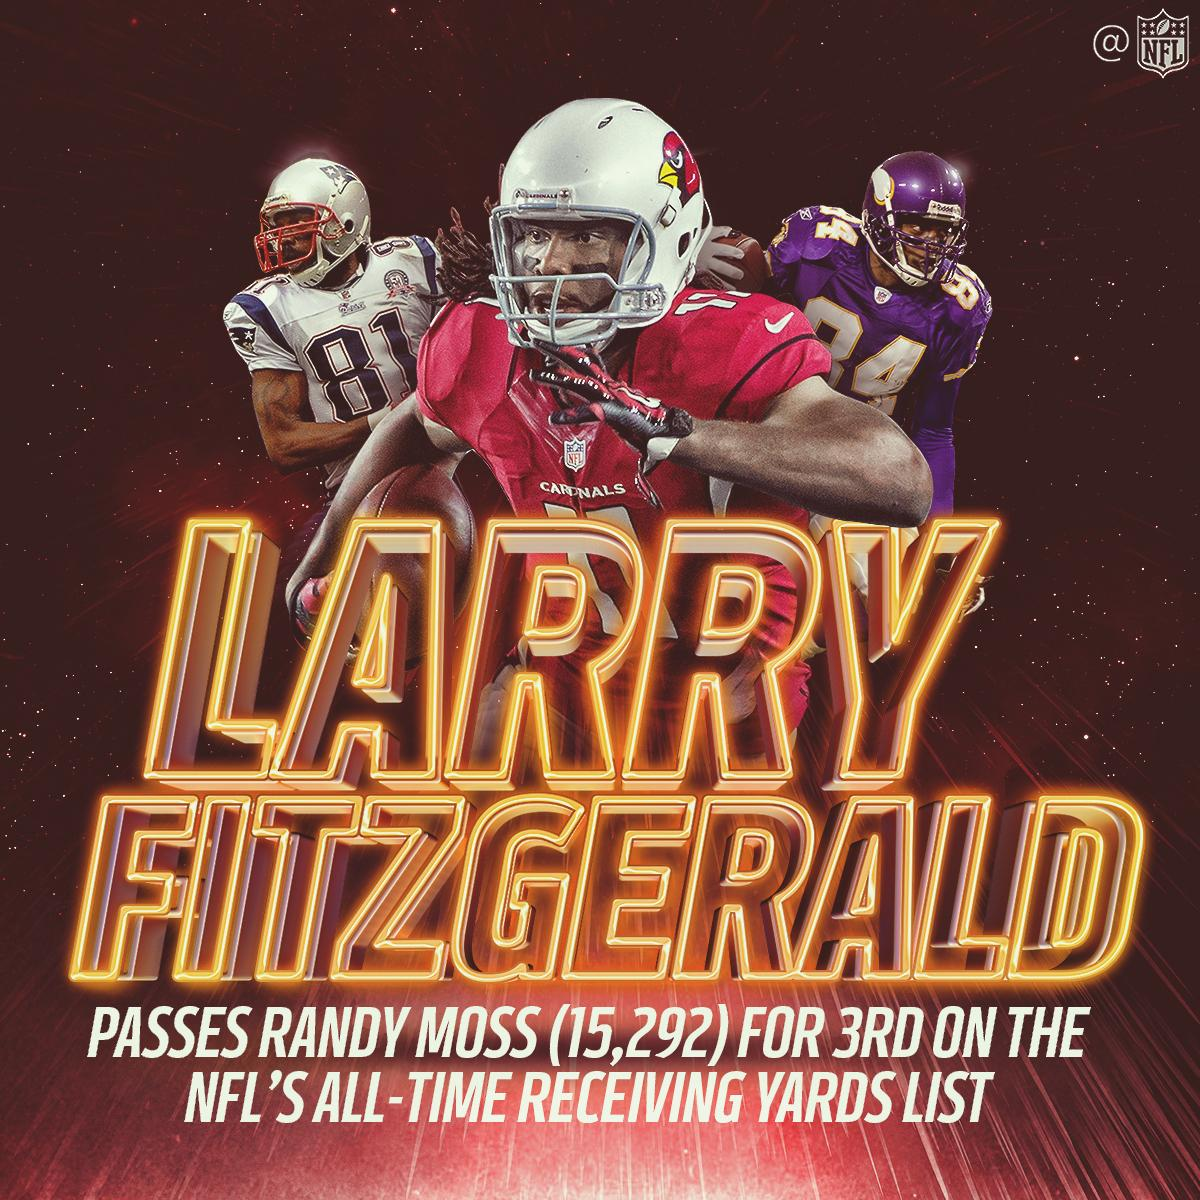 .@LarryFitzgerald: Now 3rd in all-time receiving yards! #BeRedSeeRed https://t.co/U4MHwUZK7r